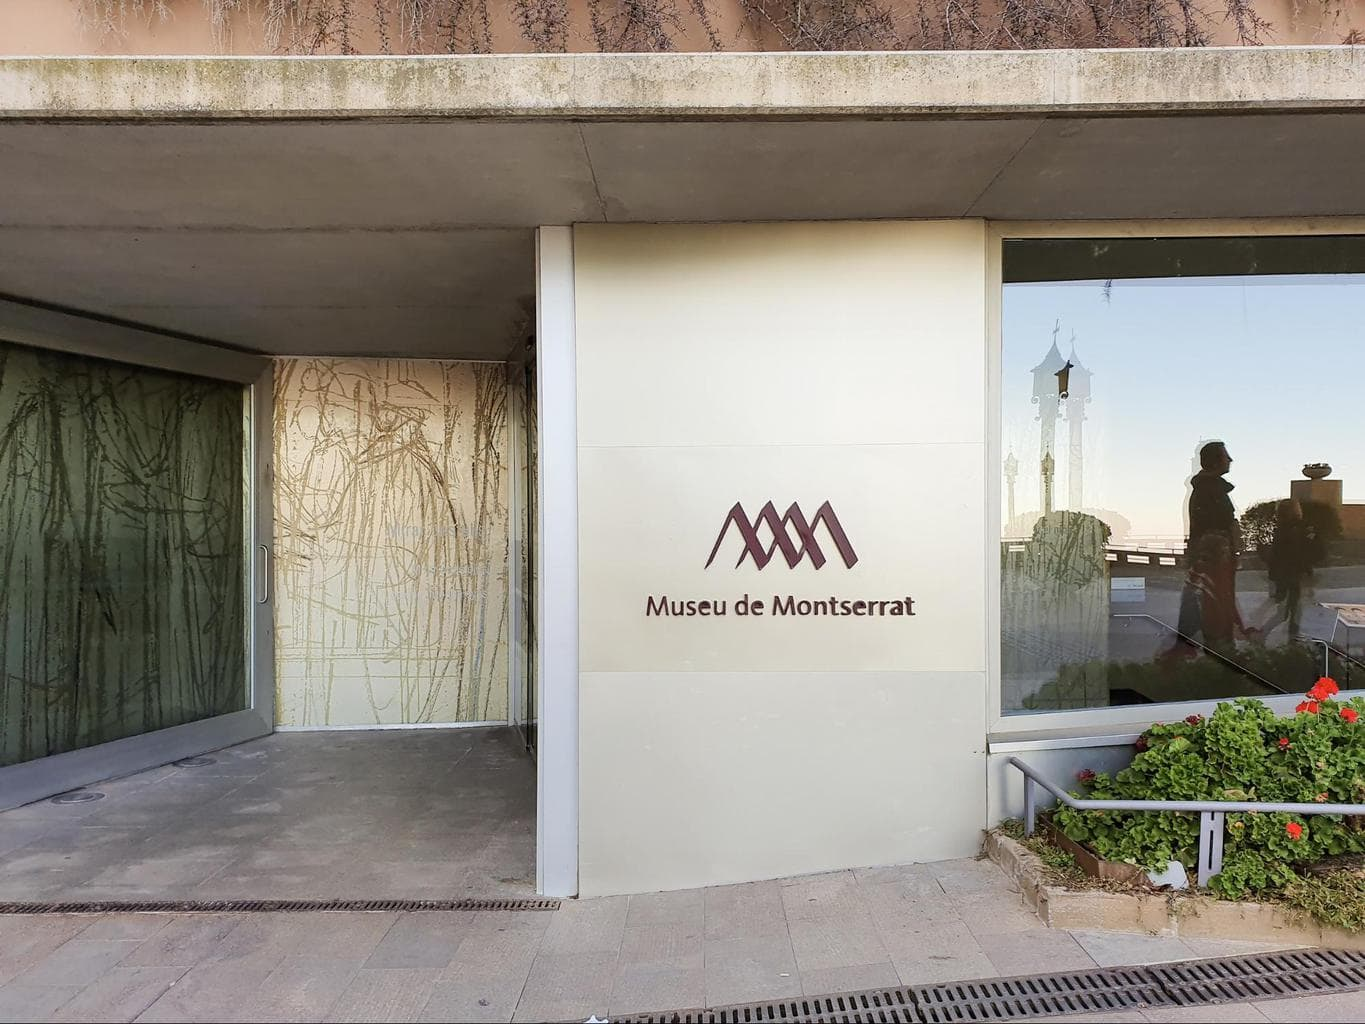 Entrance to the Museum of Montserrat